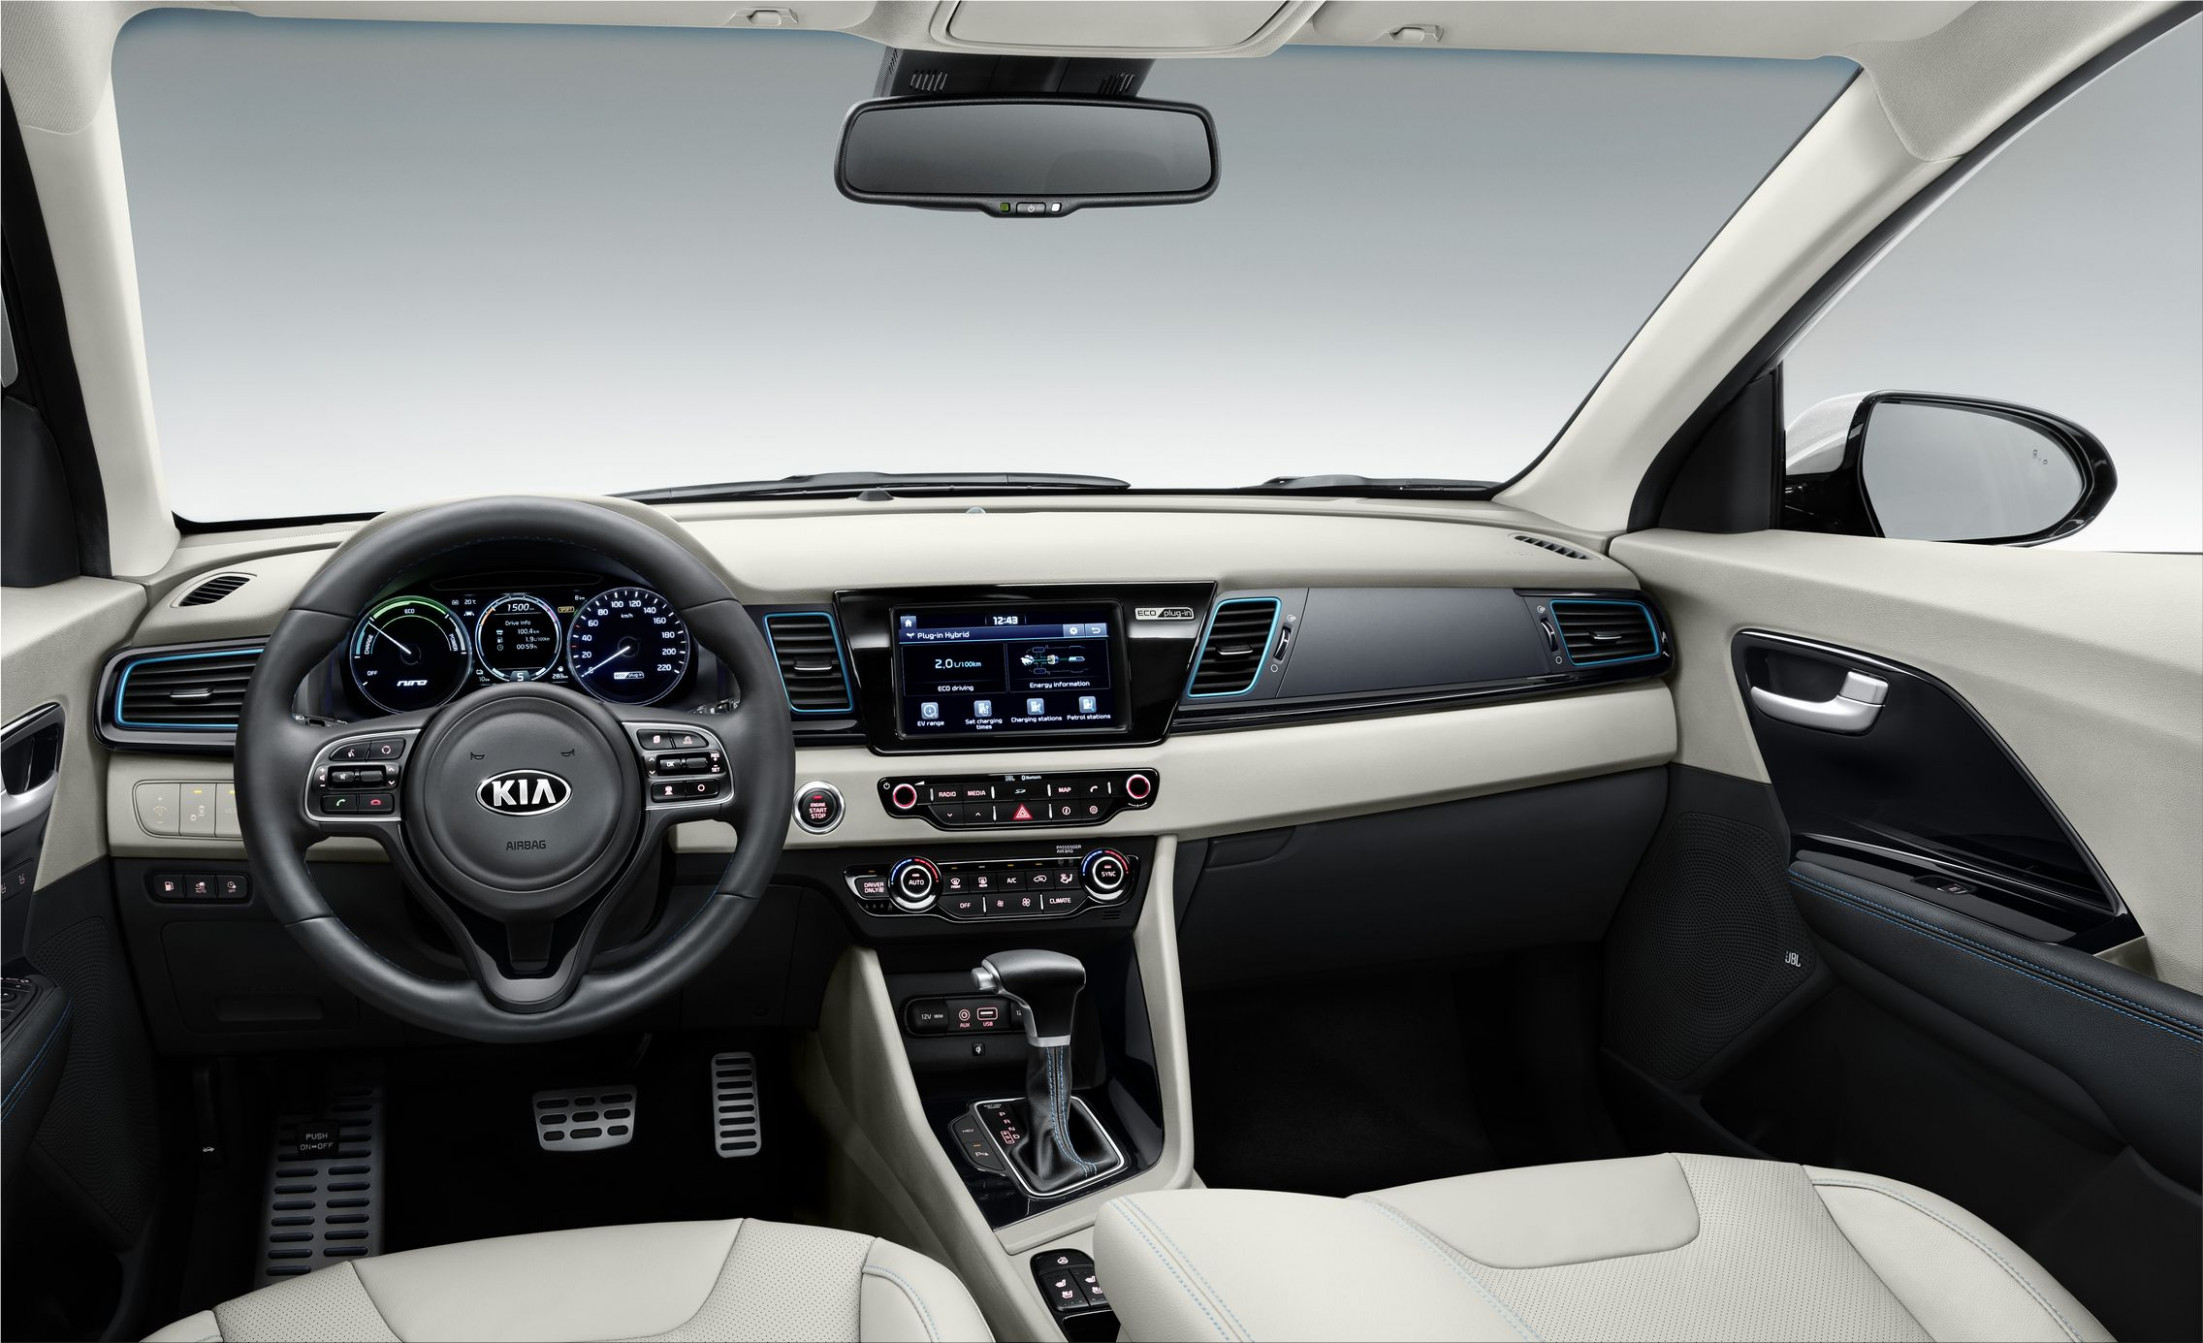 New Versions of Kia Niro Hybrid and Plug-in Hybrid can be ordered ..